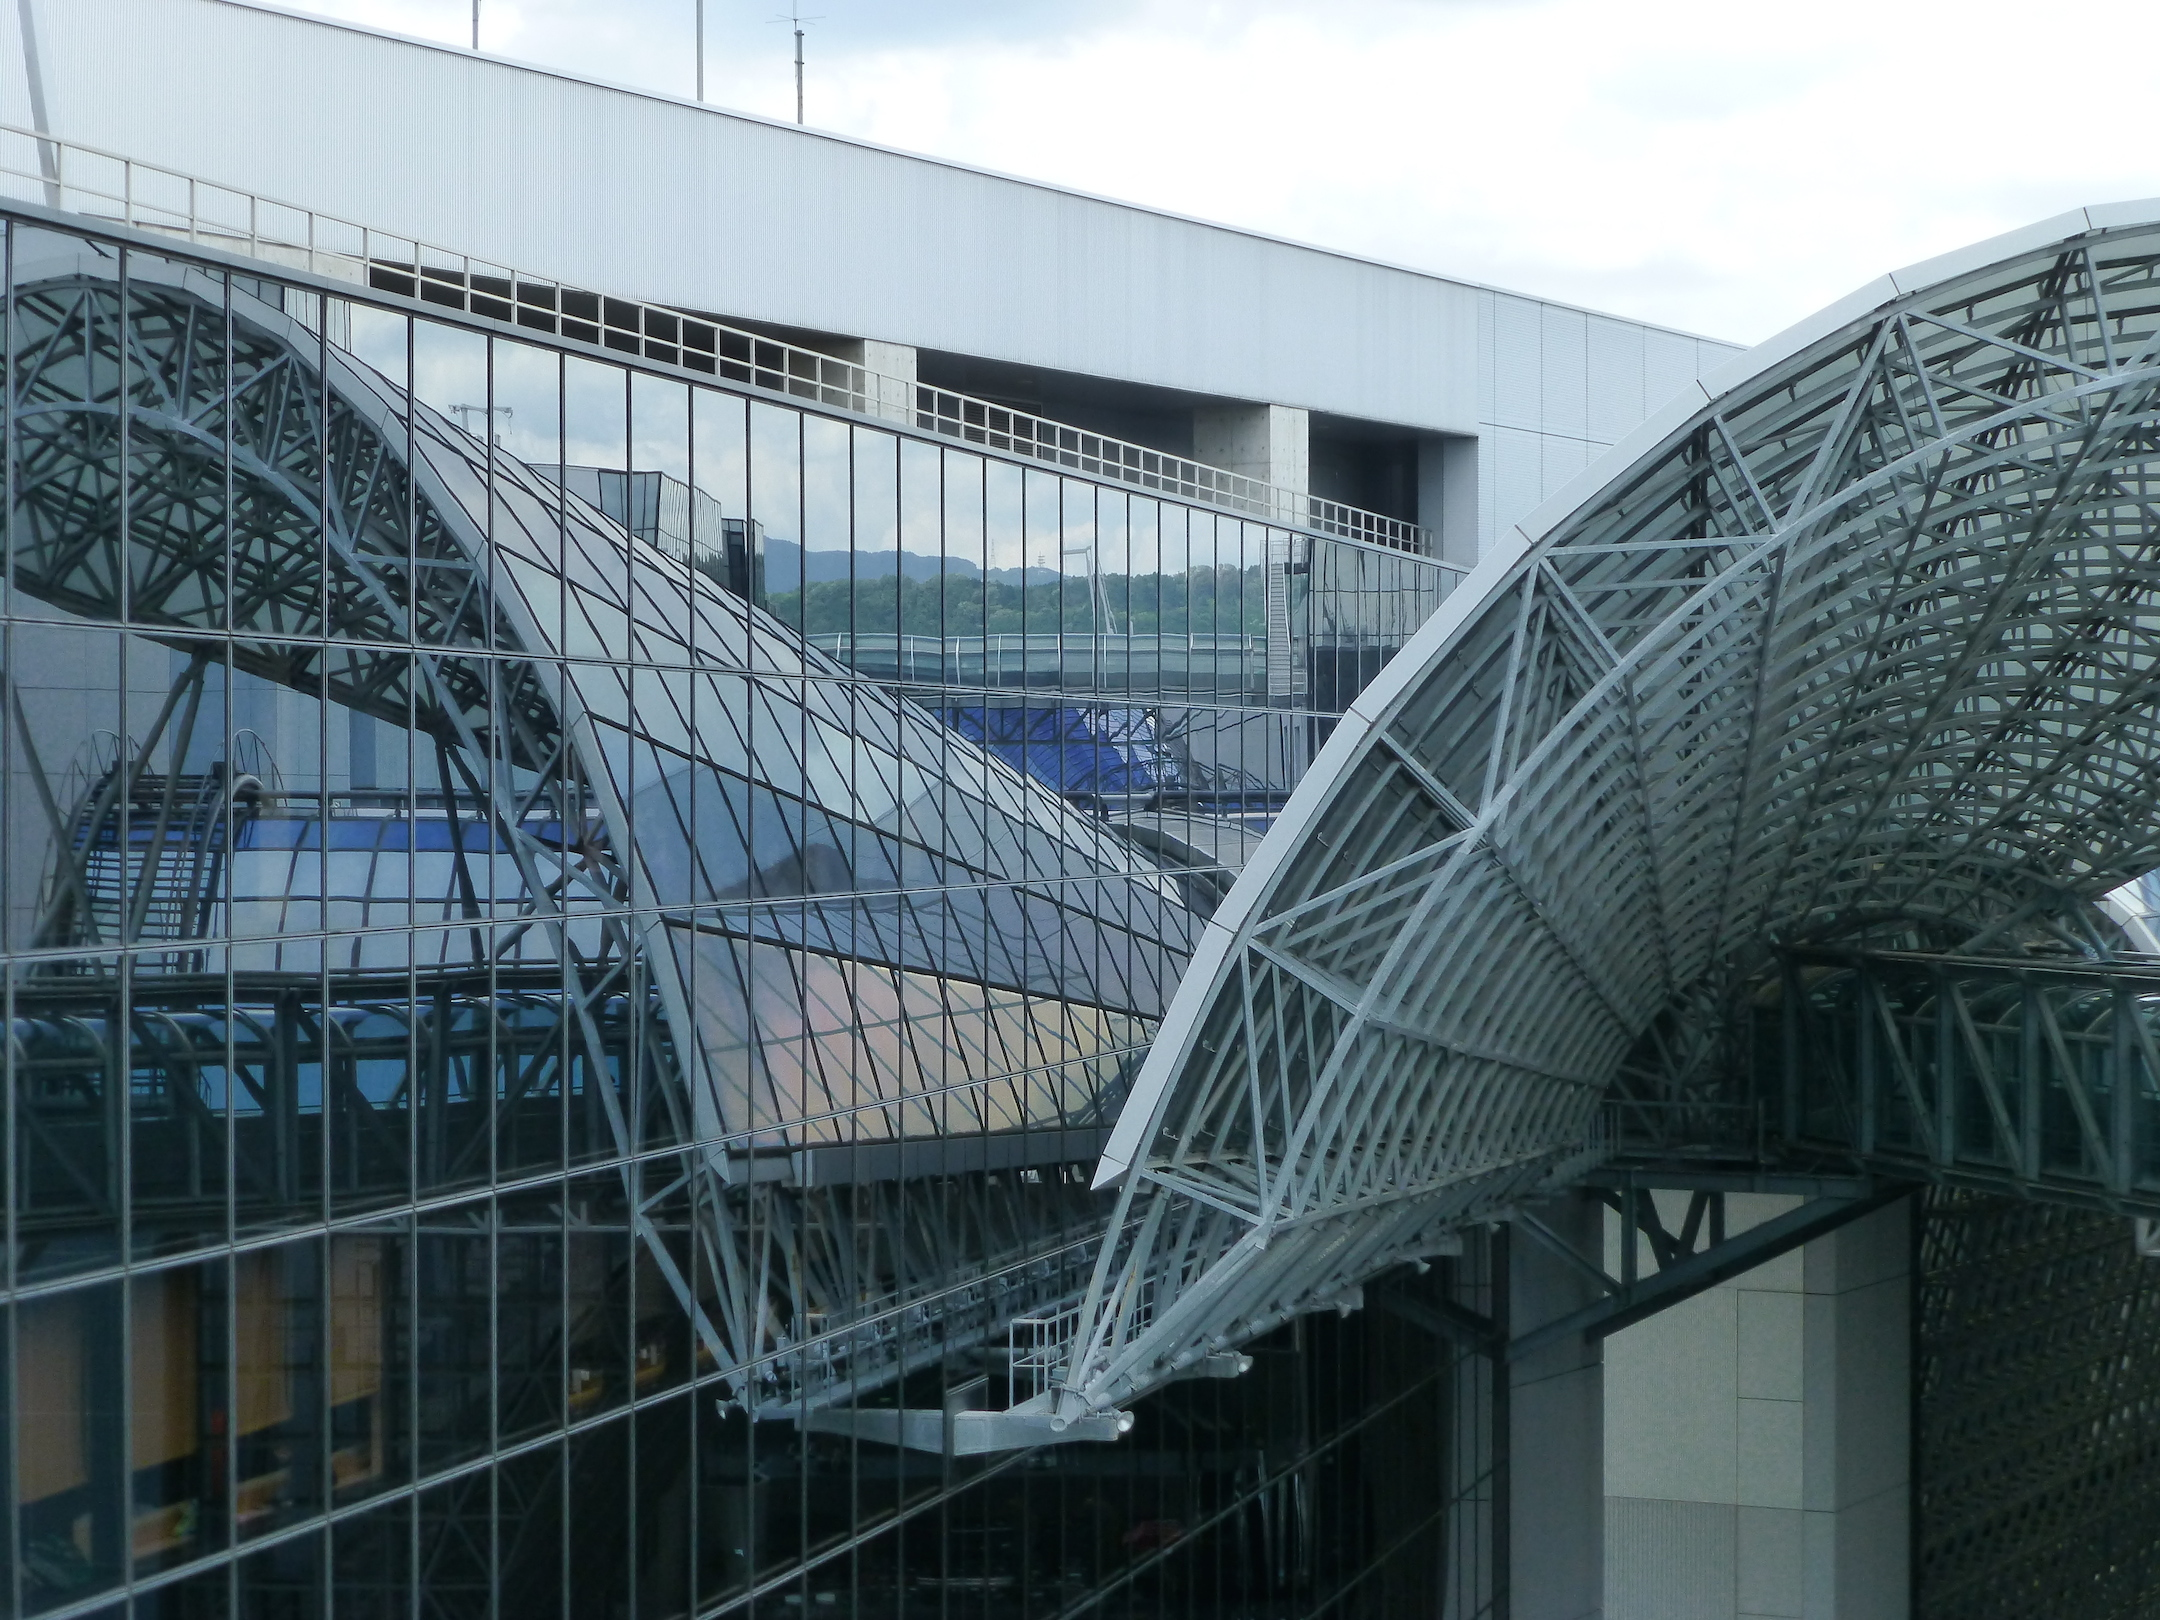 Roof of Kyoto railway station